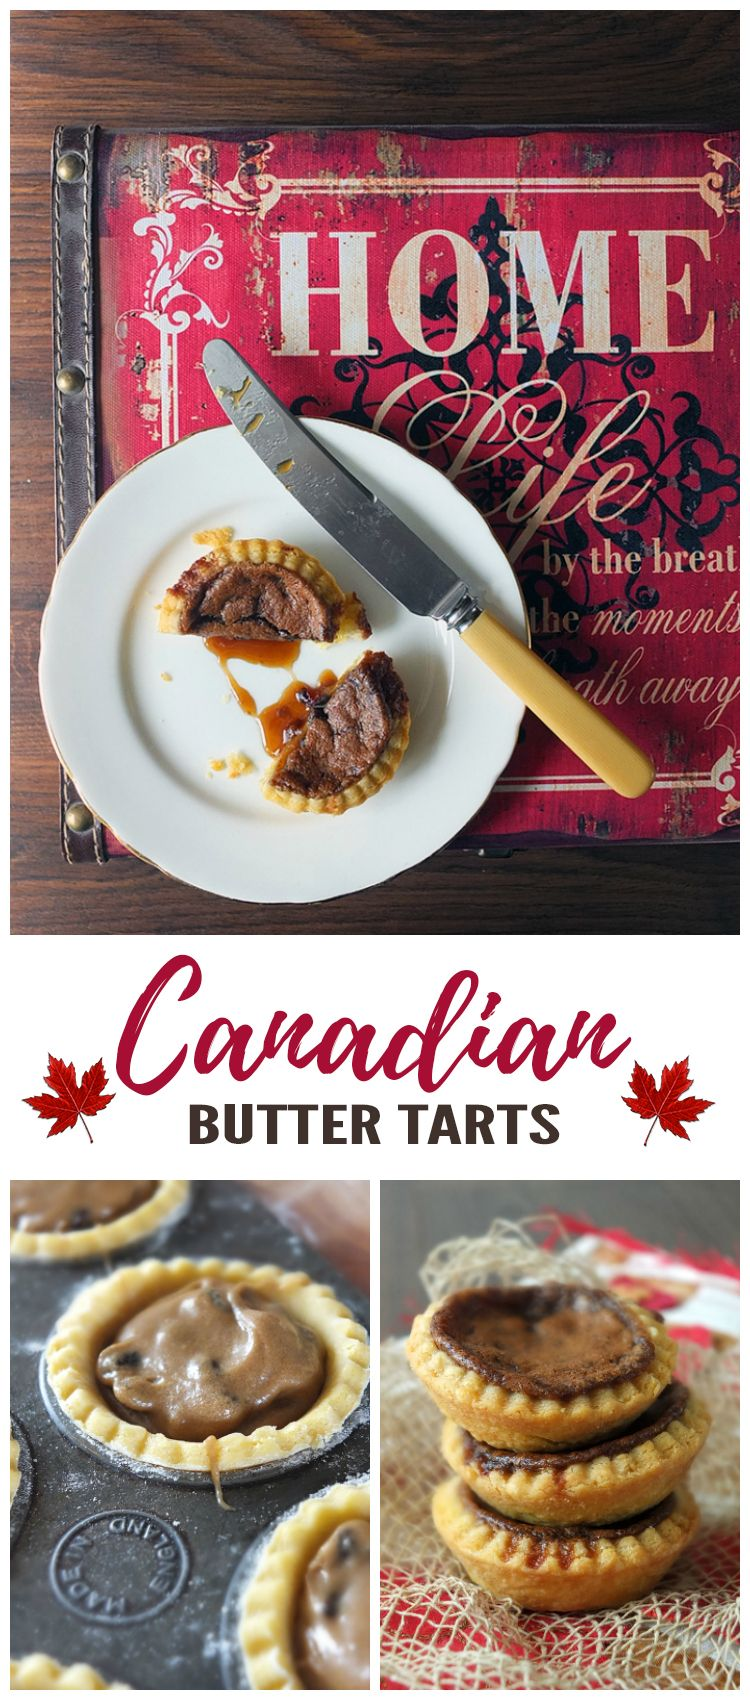 One of Canada's most popular treats! Butter tarts